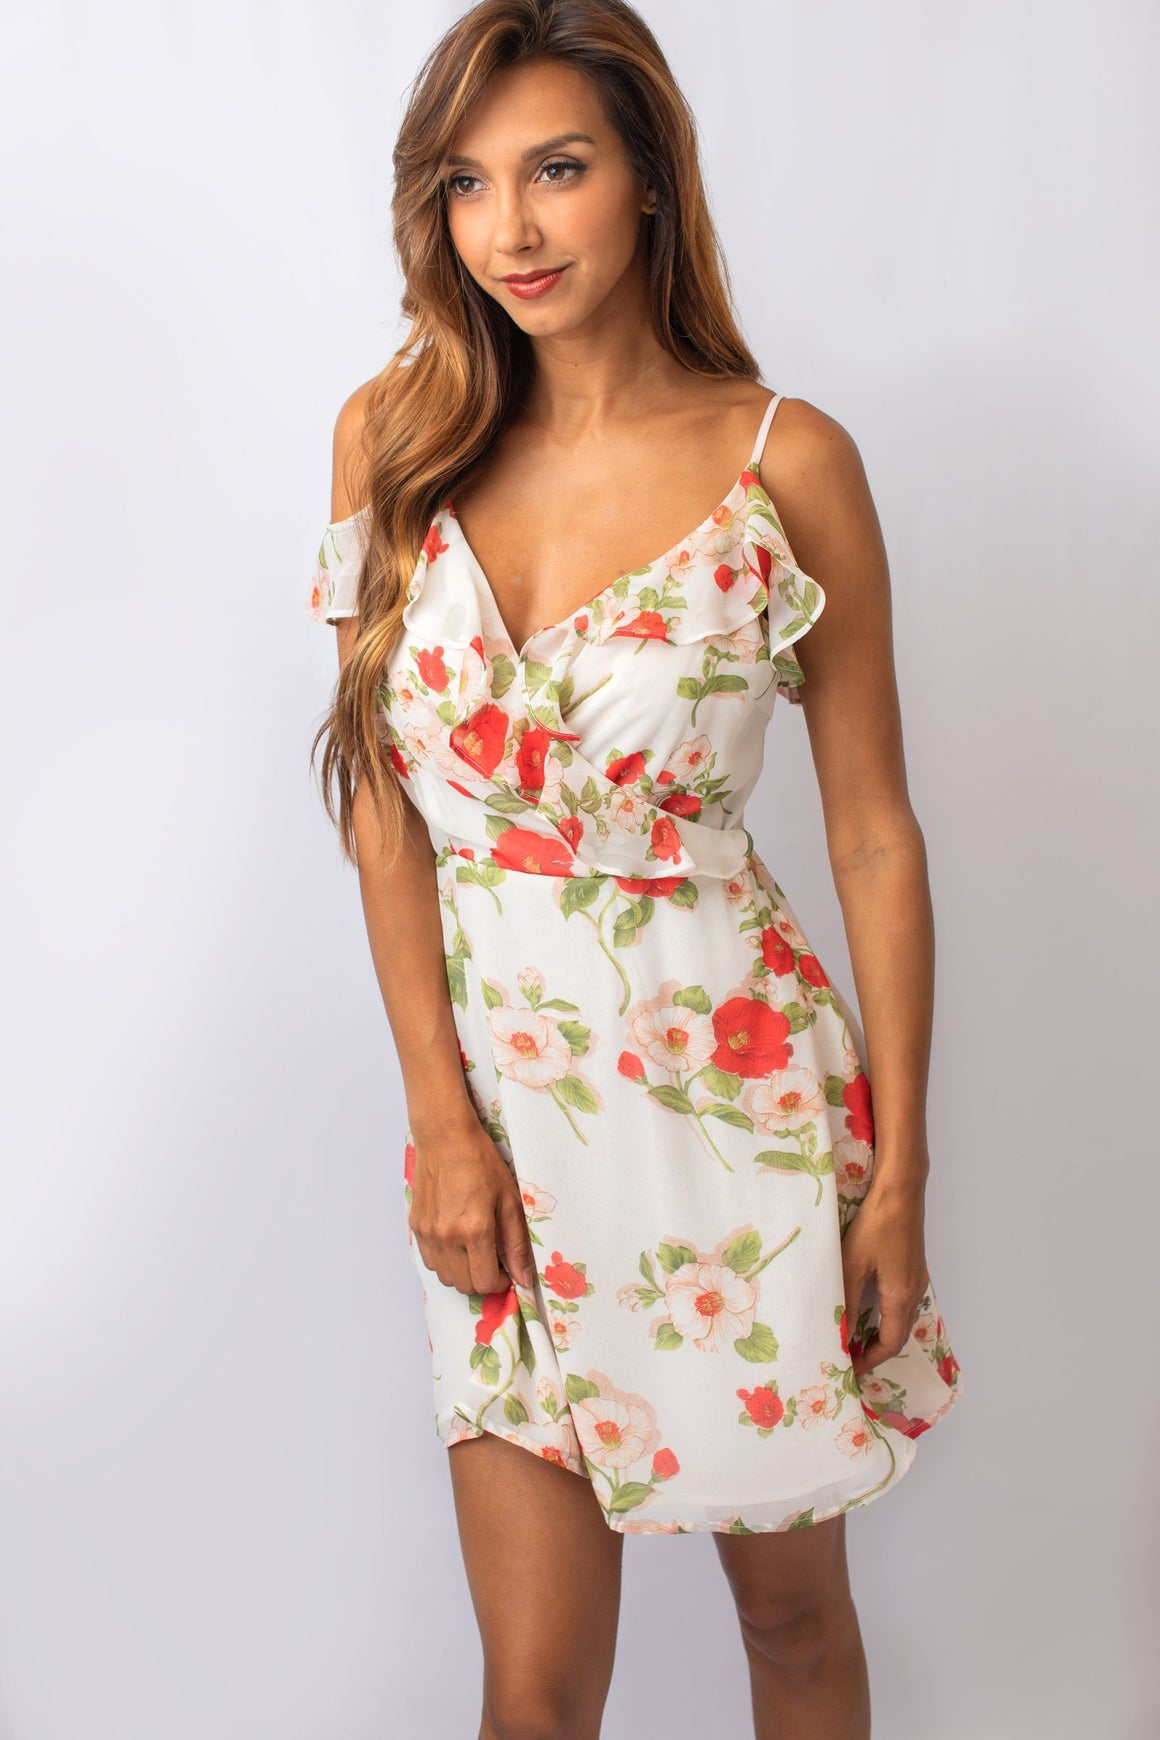 Off-White Floral Cold Shoulder Dress